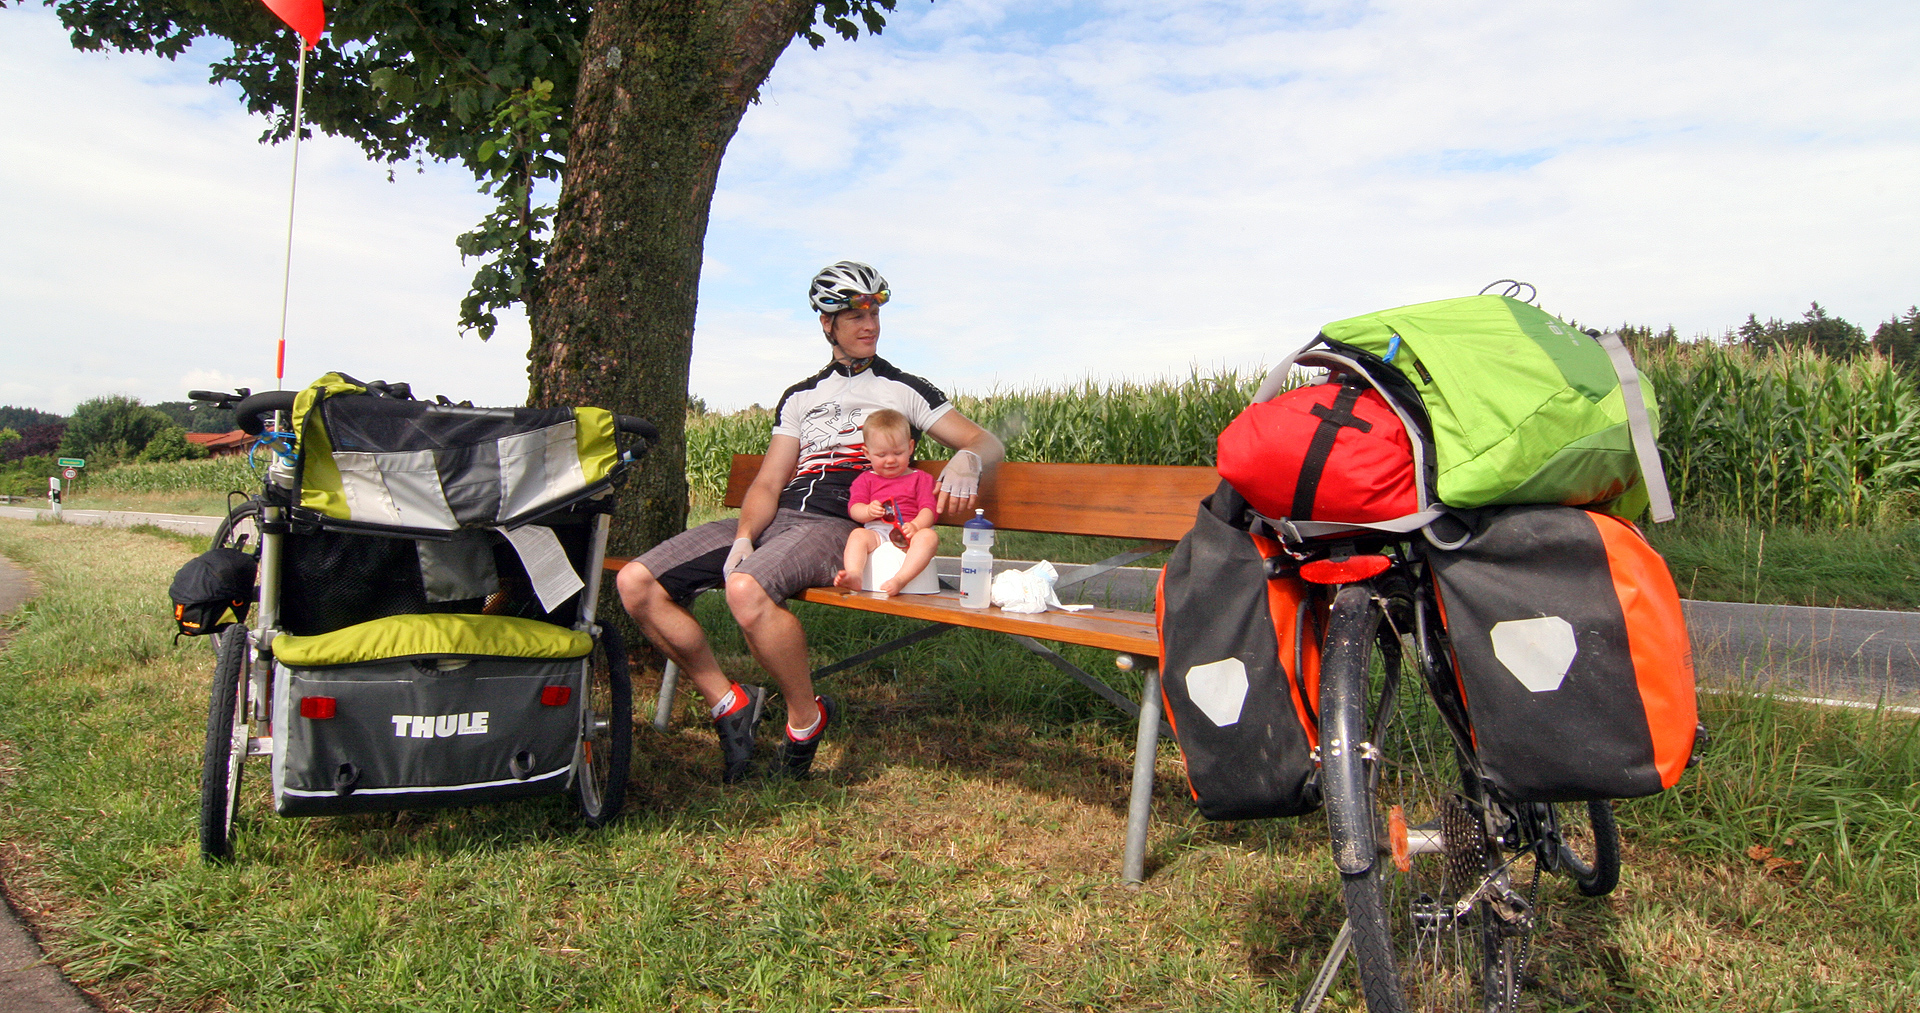 2015 09 Thule Chariot Cougar 2 im Test Judith Hackinger